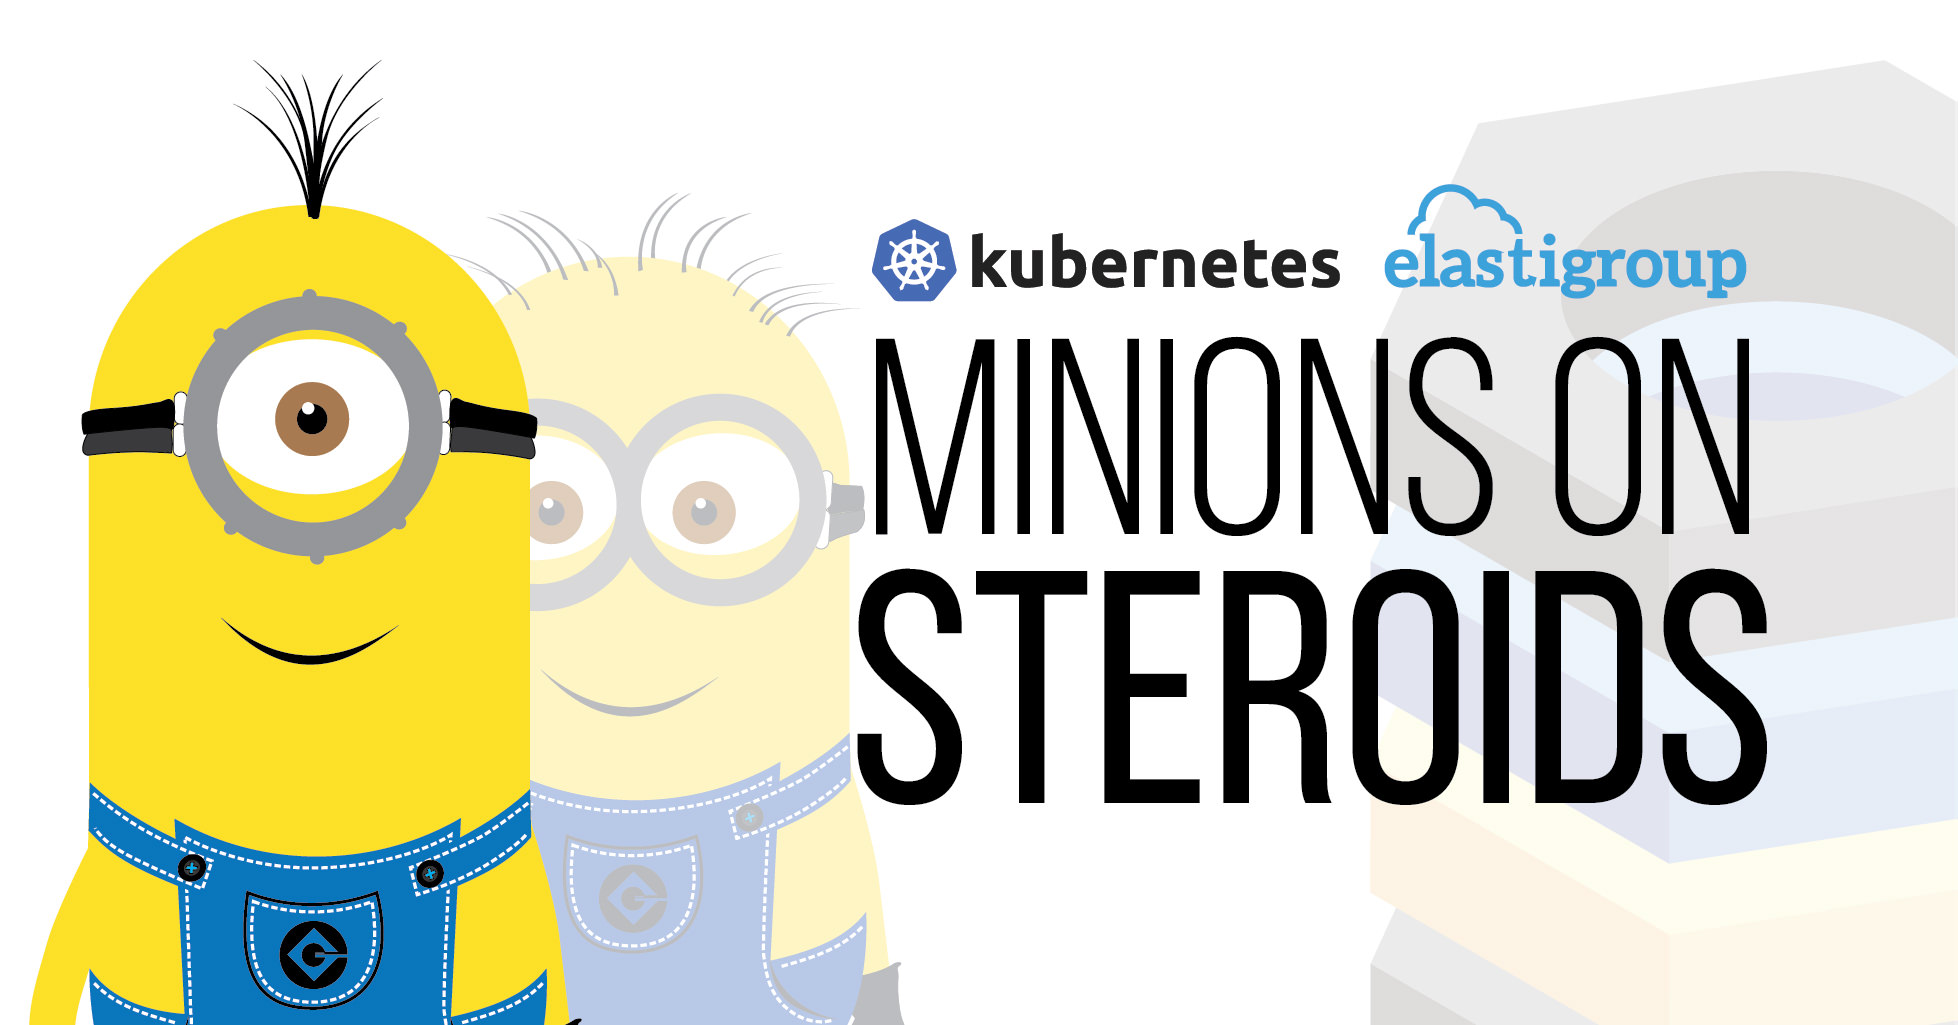 kubernetes-minions-ad-banner